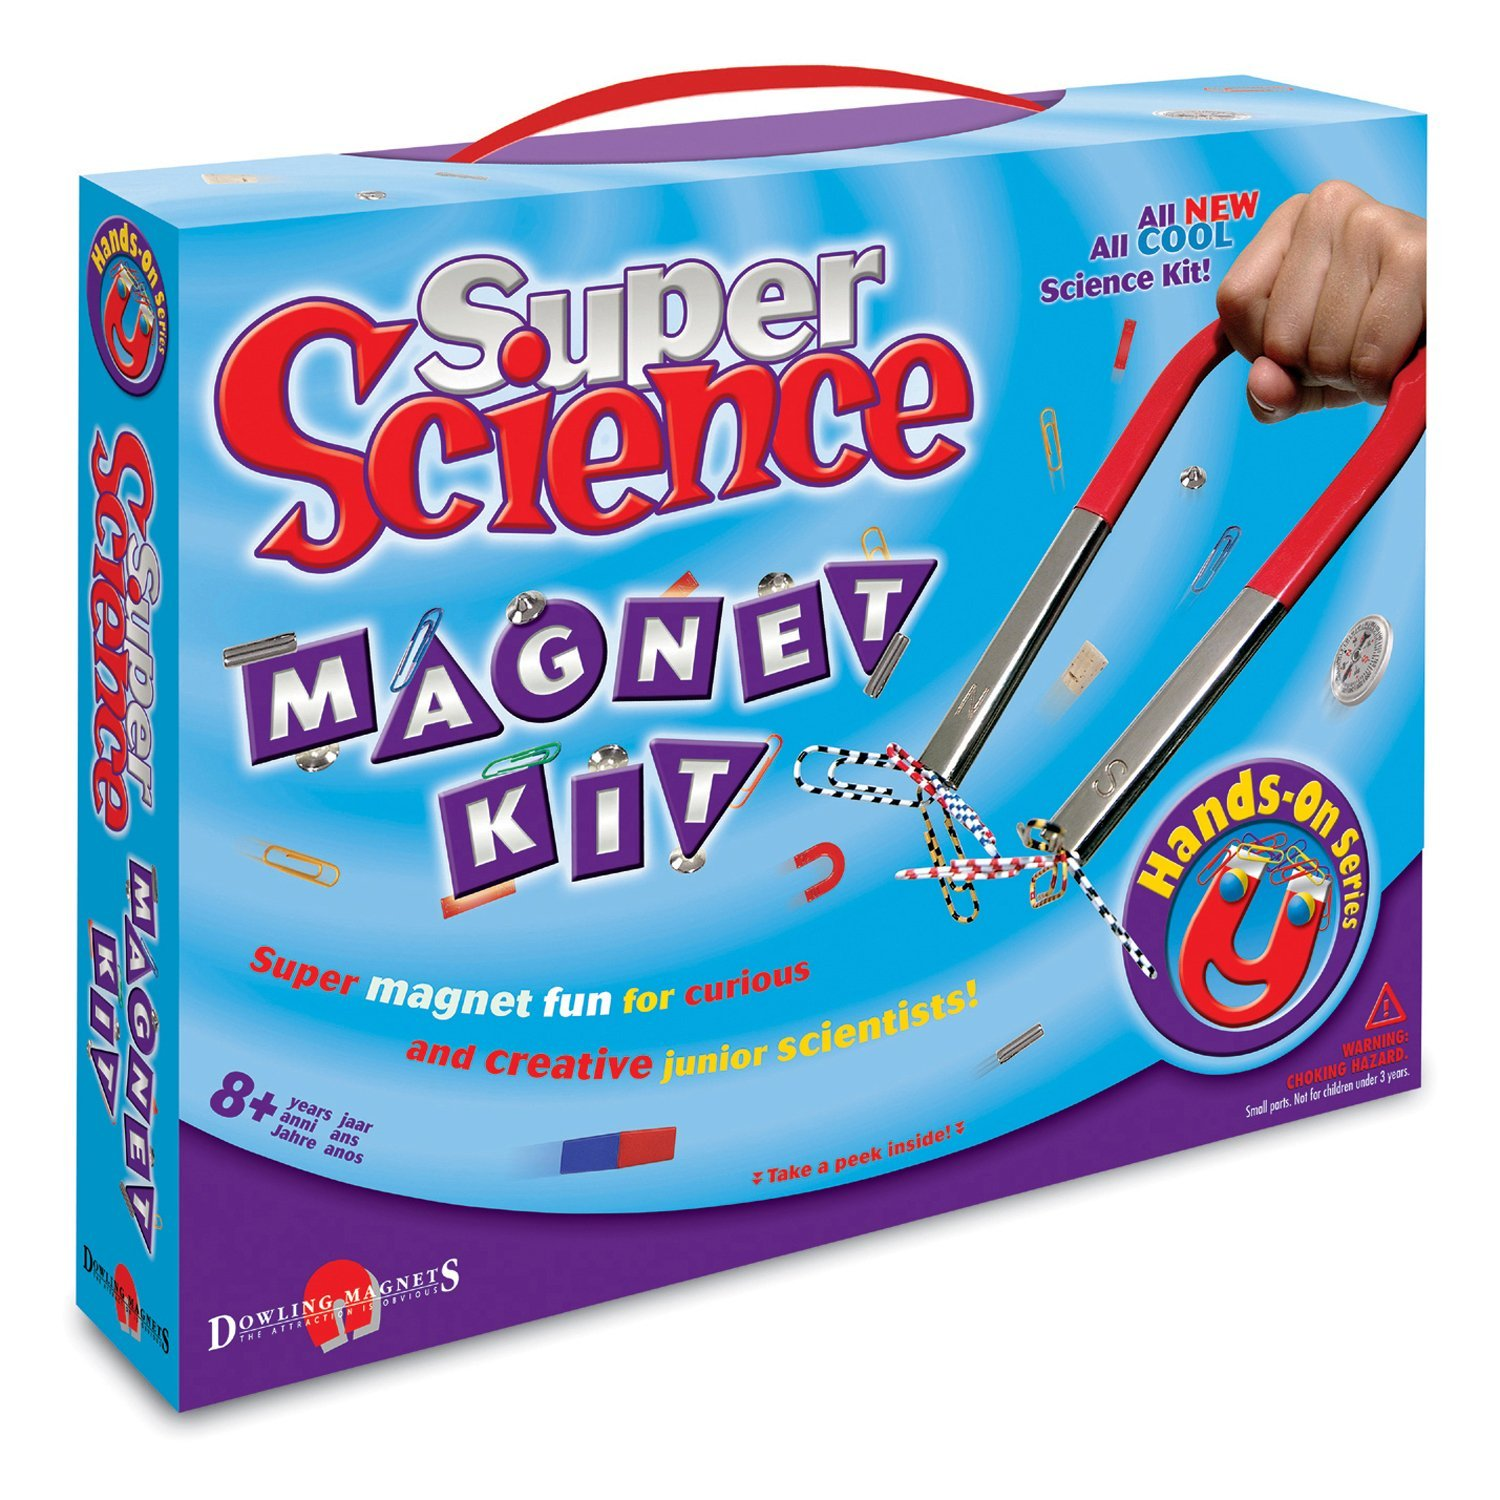 Super Science Magnet Kit., USA, Brand School Specialty